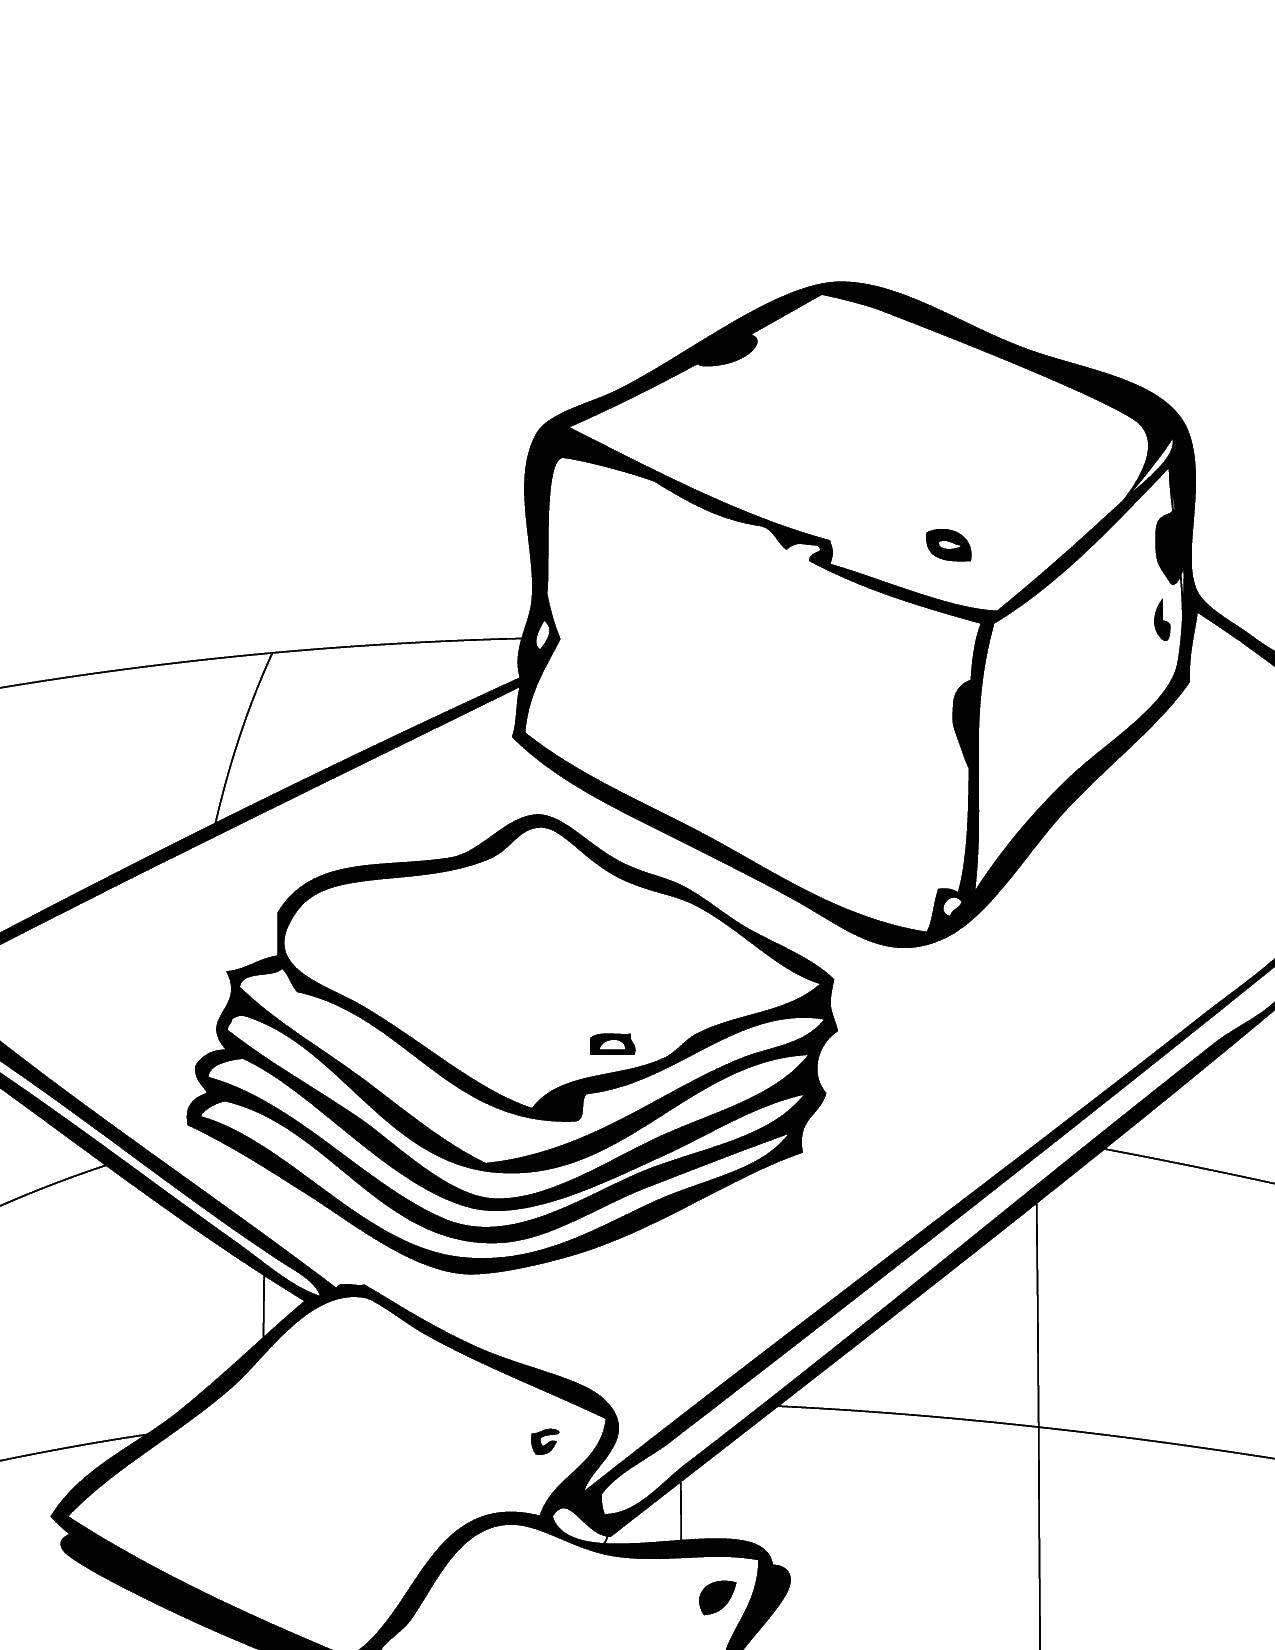 Coloring sheet Cheese Download .  Print